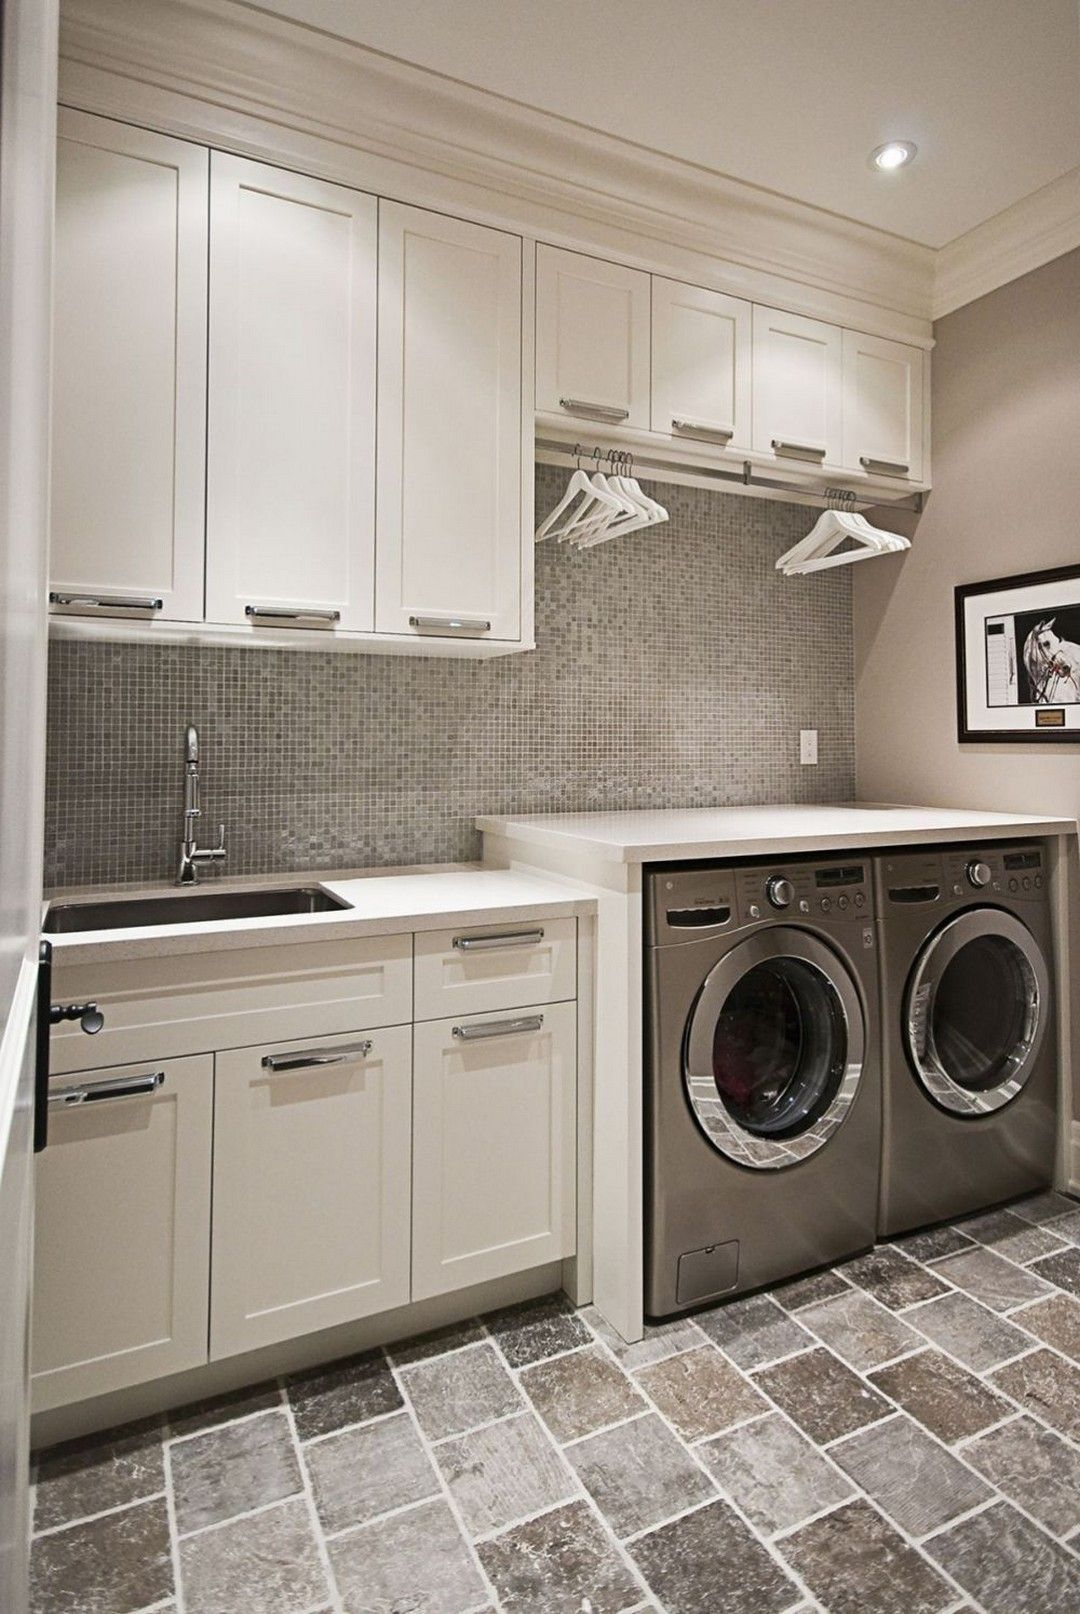 Diy Laundry Room Cabinet Storage Selves Ideas For Small Rooms